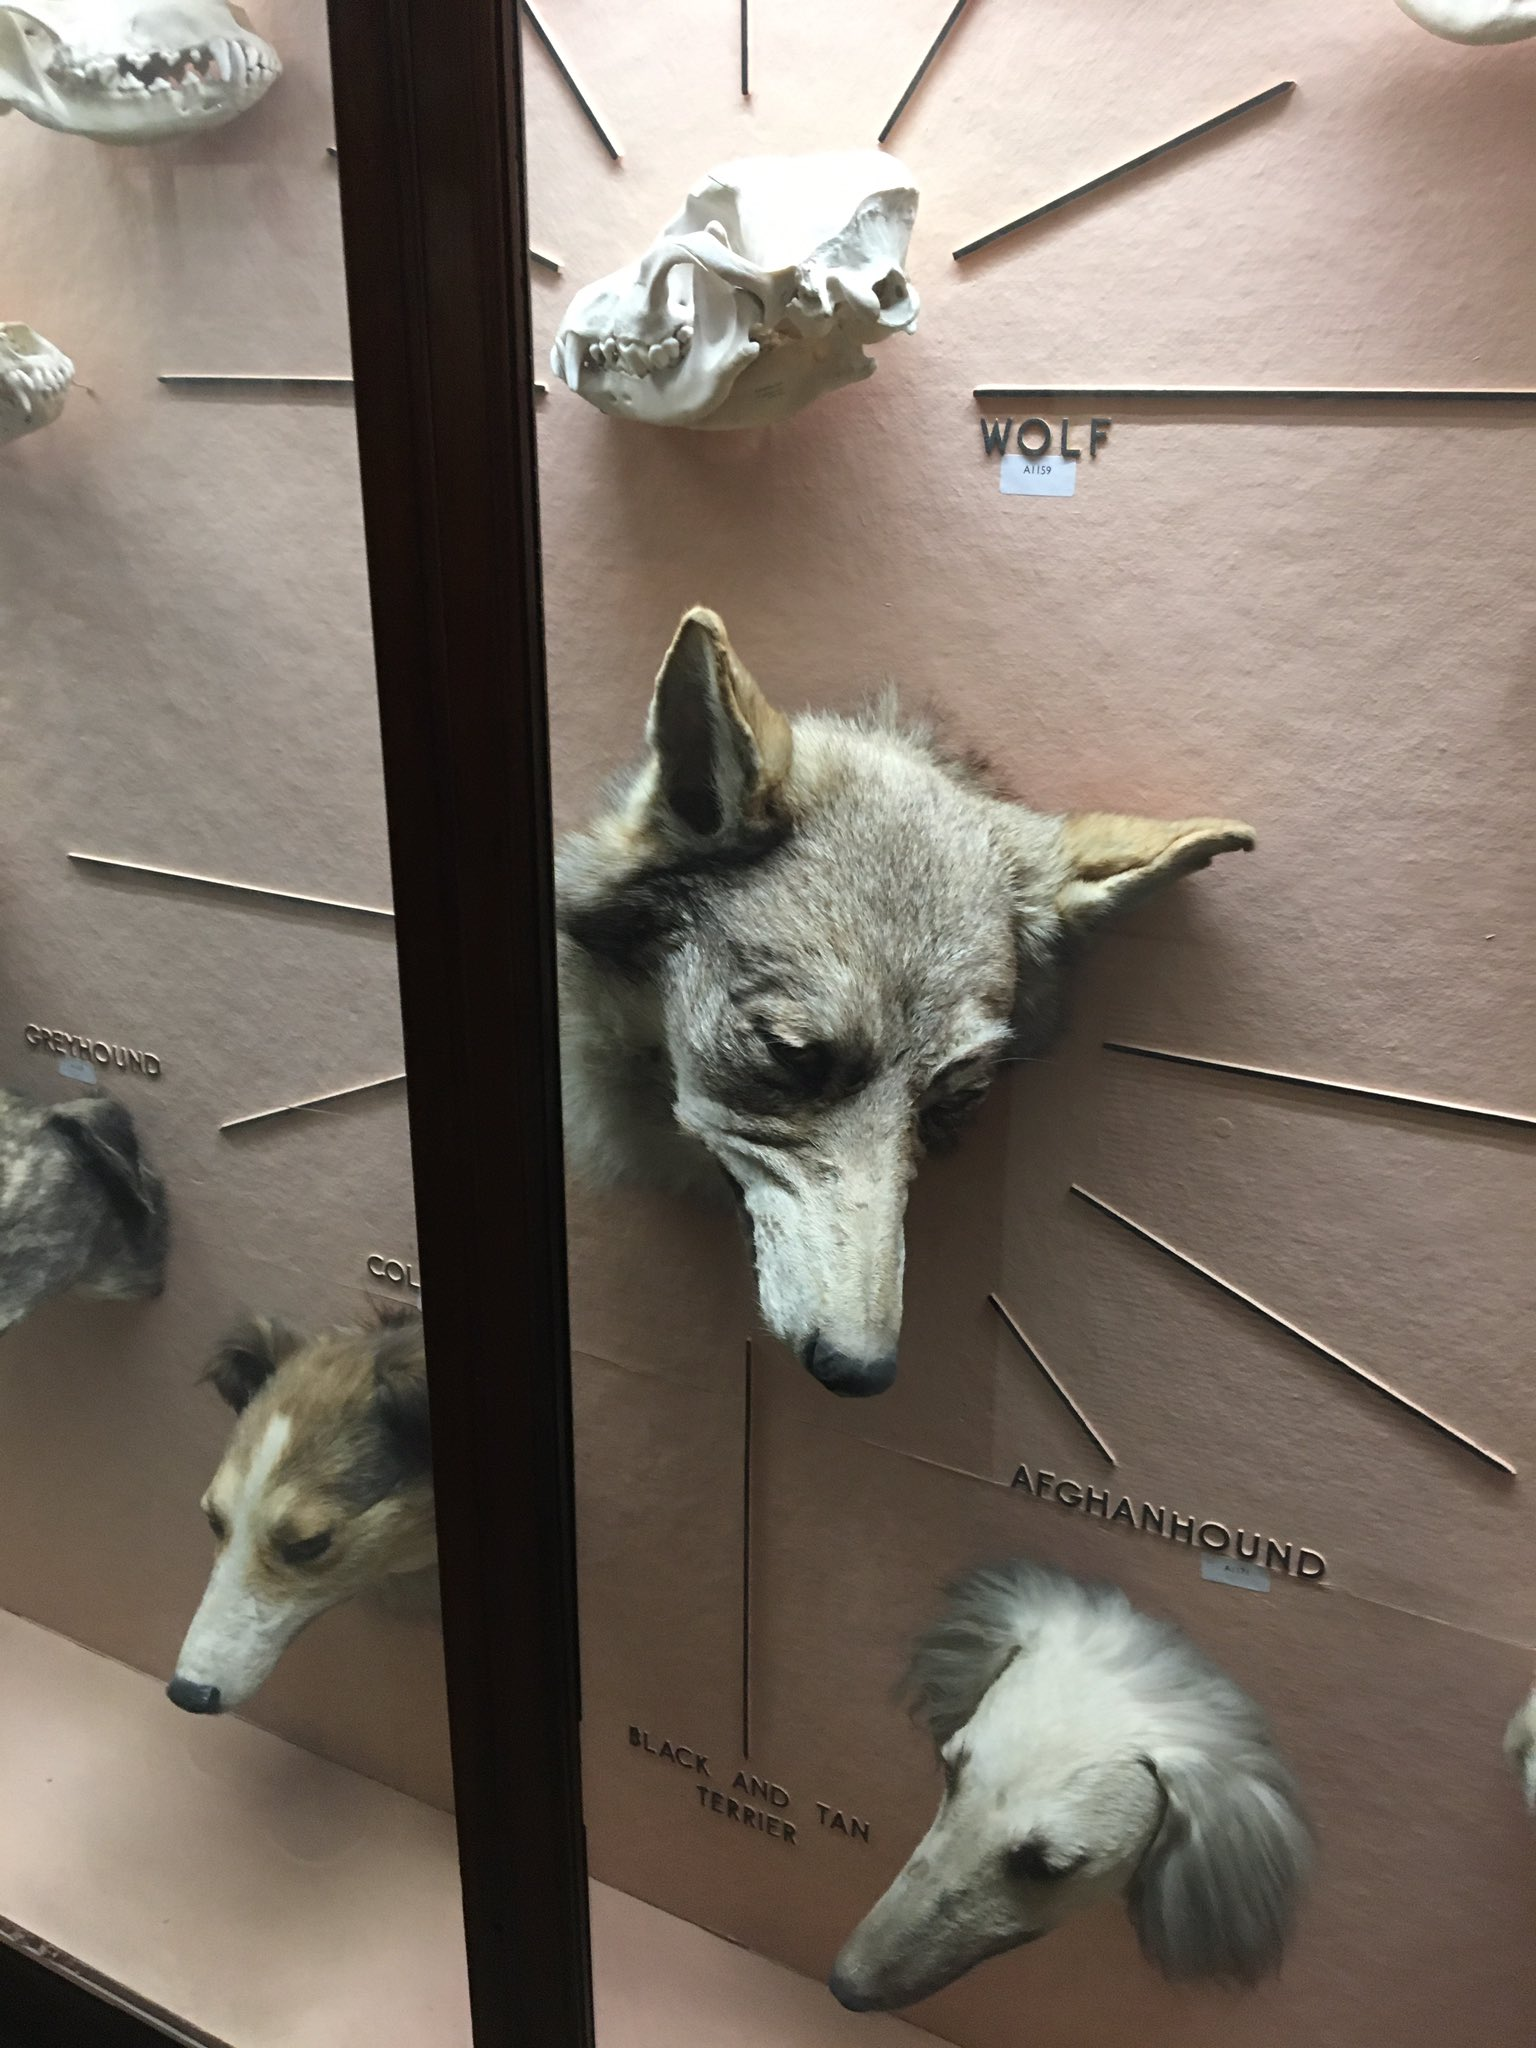 We've found a Direwolf in the Natural History Gallery, a symbol of House Stark. RT if you're House Stark. #Takeoverday #GoT https://t.co/B3lo9VIyDN